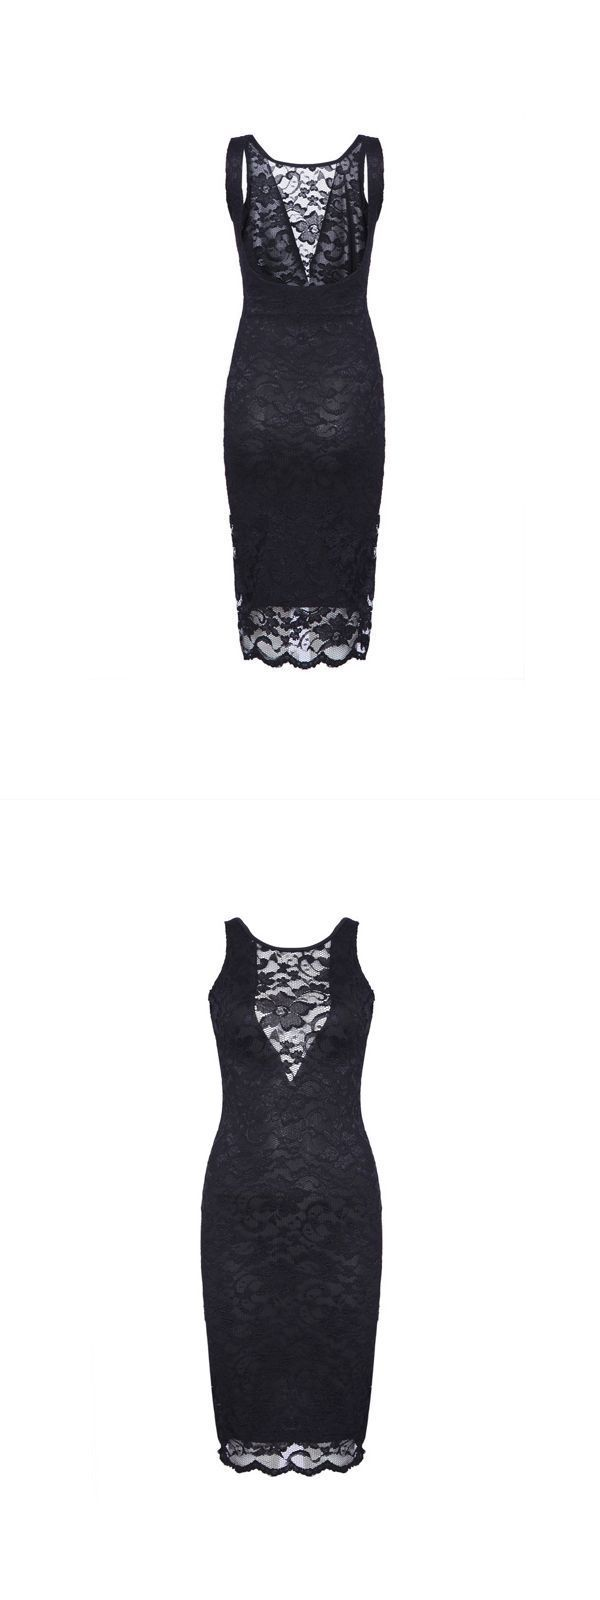 Lace dresses red carpet women deep v-necklace sleeveless backless sheath fitted pencil dress #lace #dresses #boohoo #lace #dresses #new #look #lace #dresses #size #0 #lace #dresses #uk